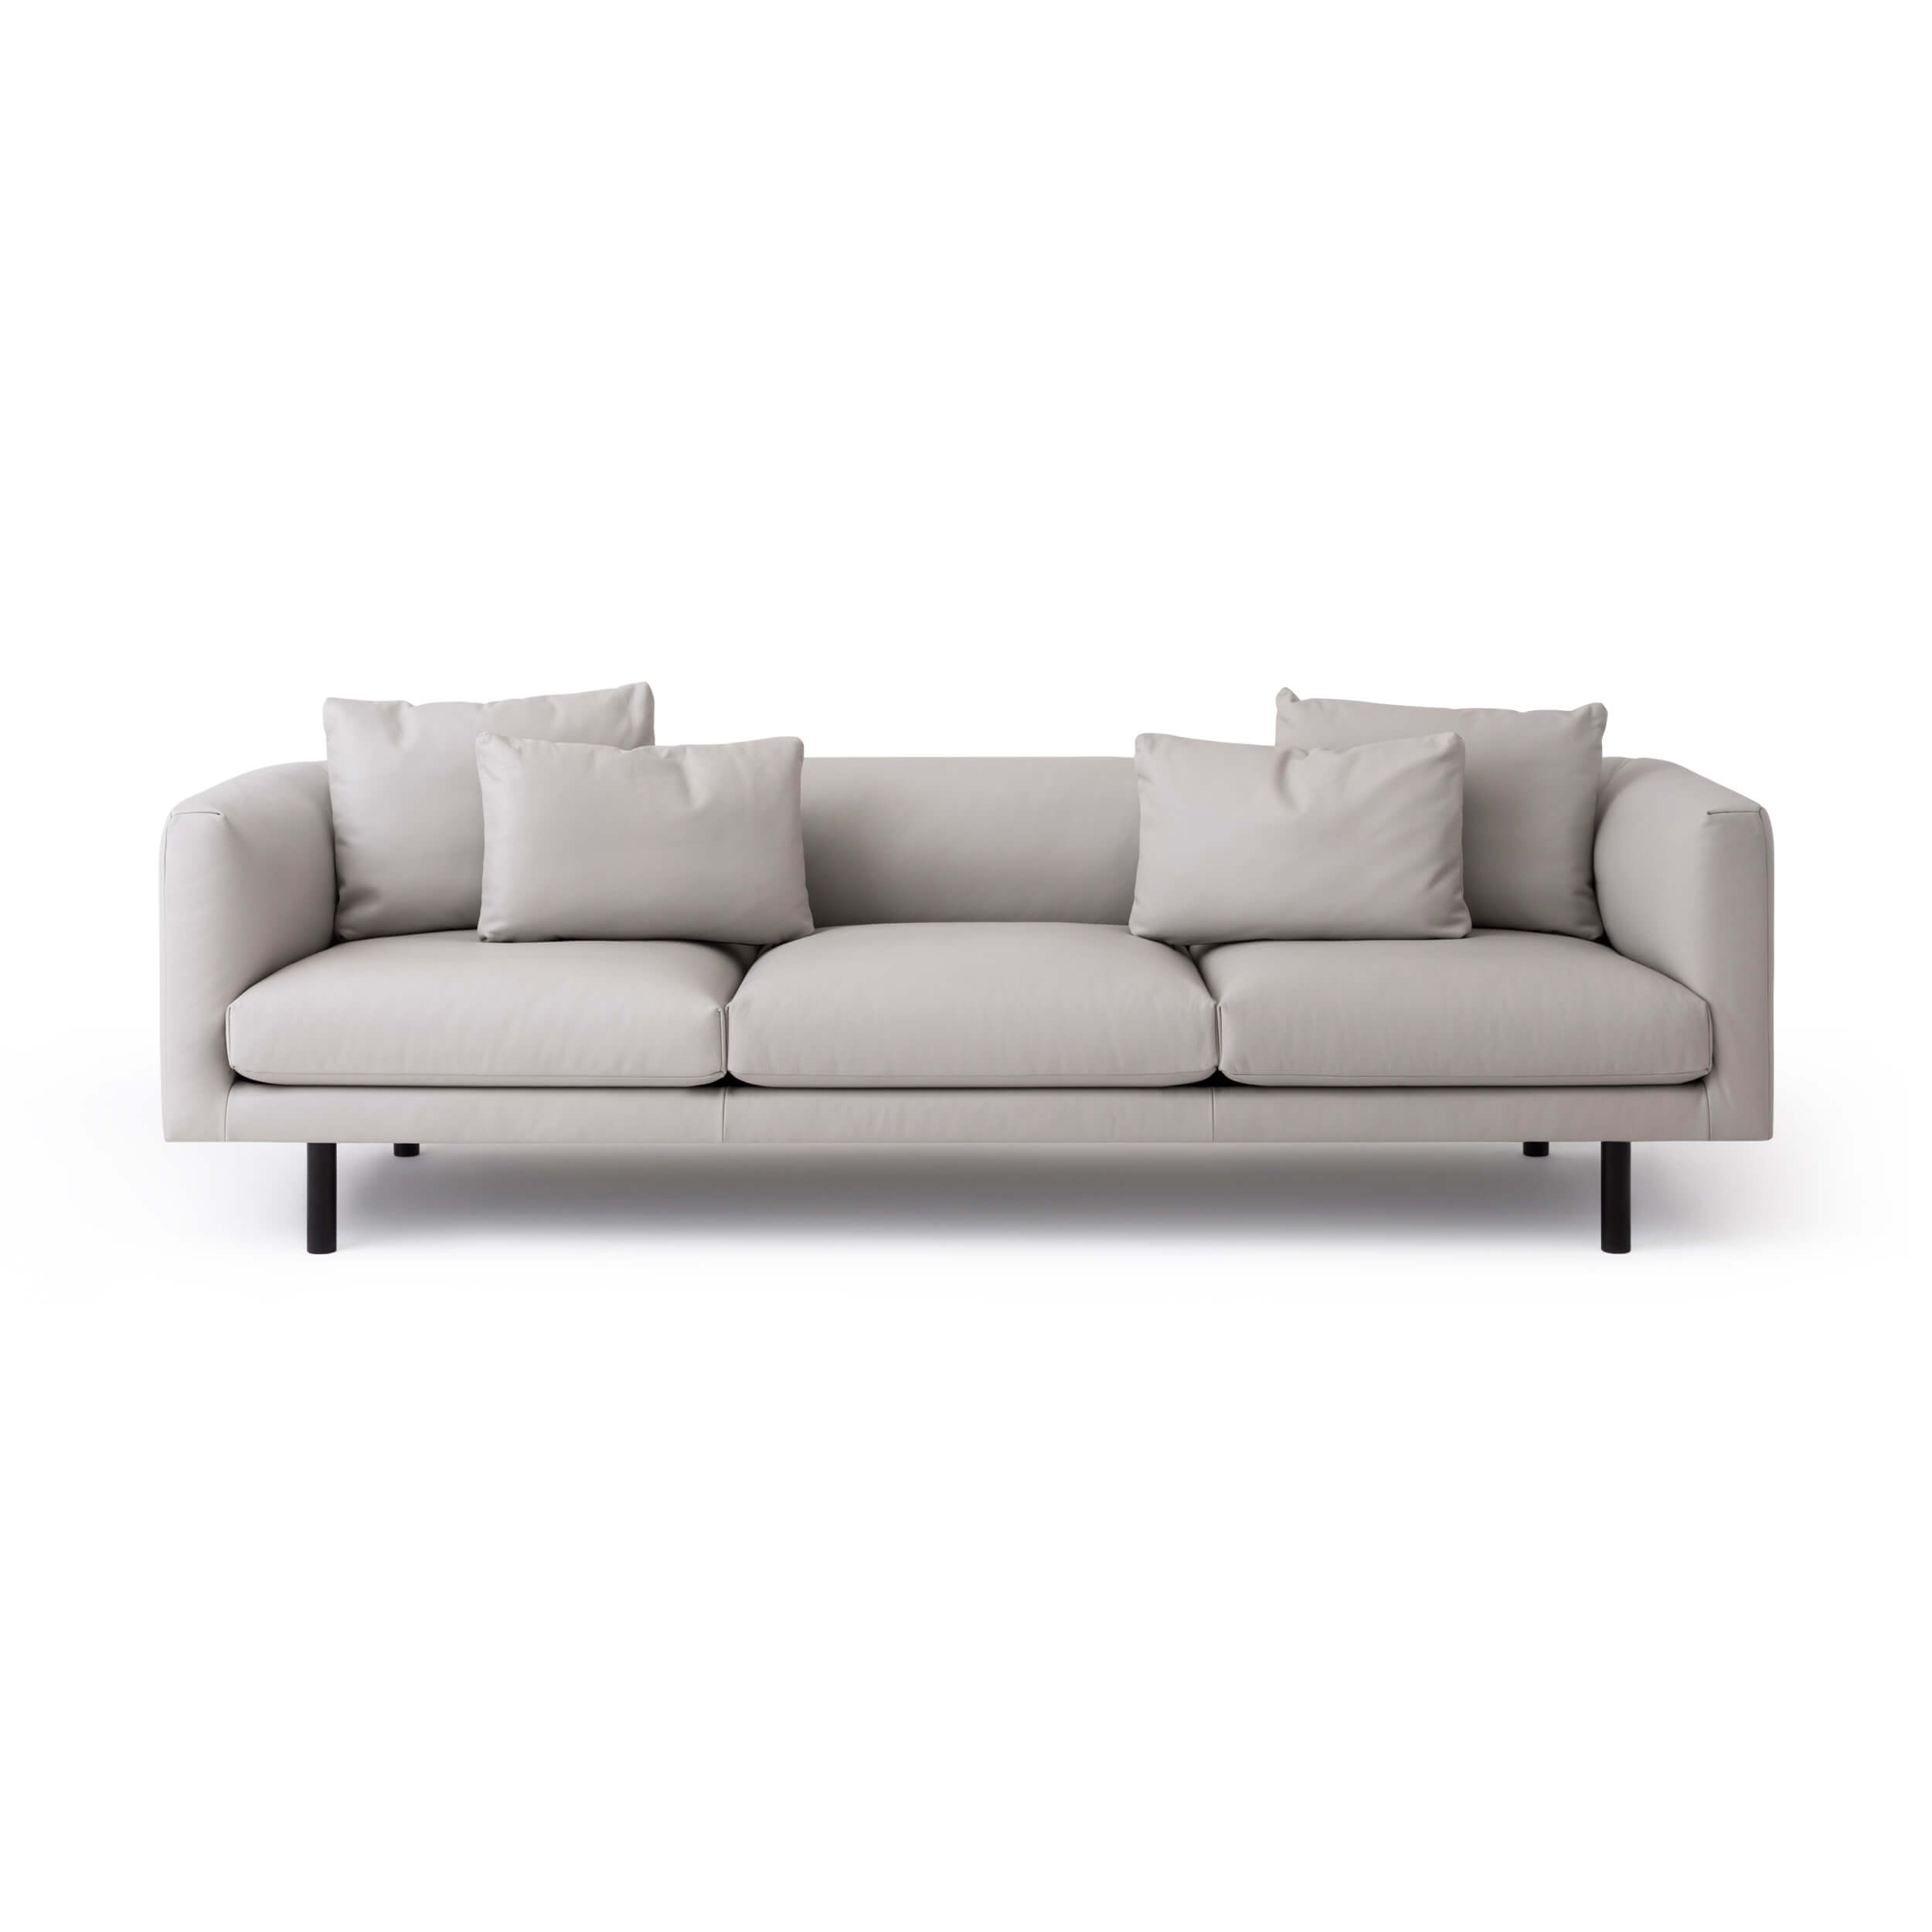 Find Modern Furniture Near You | USA | Seating | Modern ...